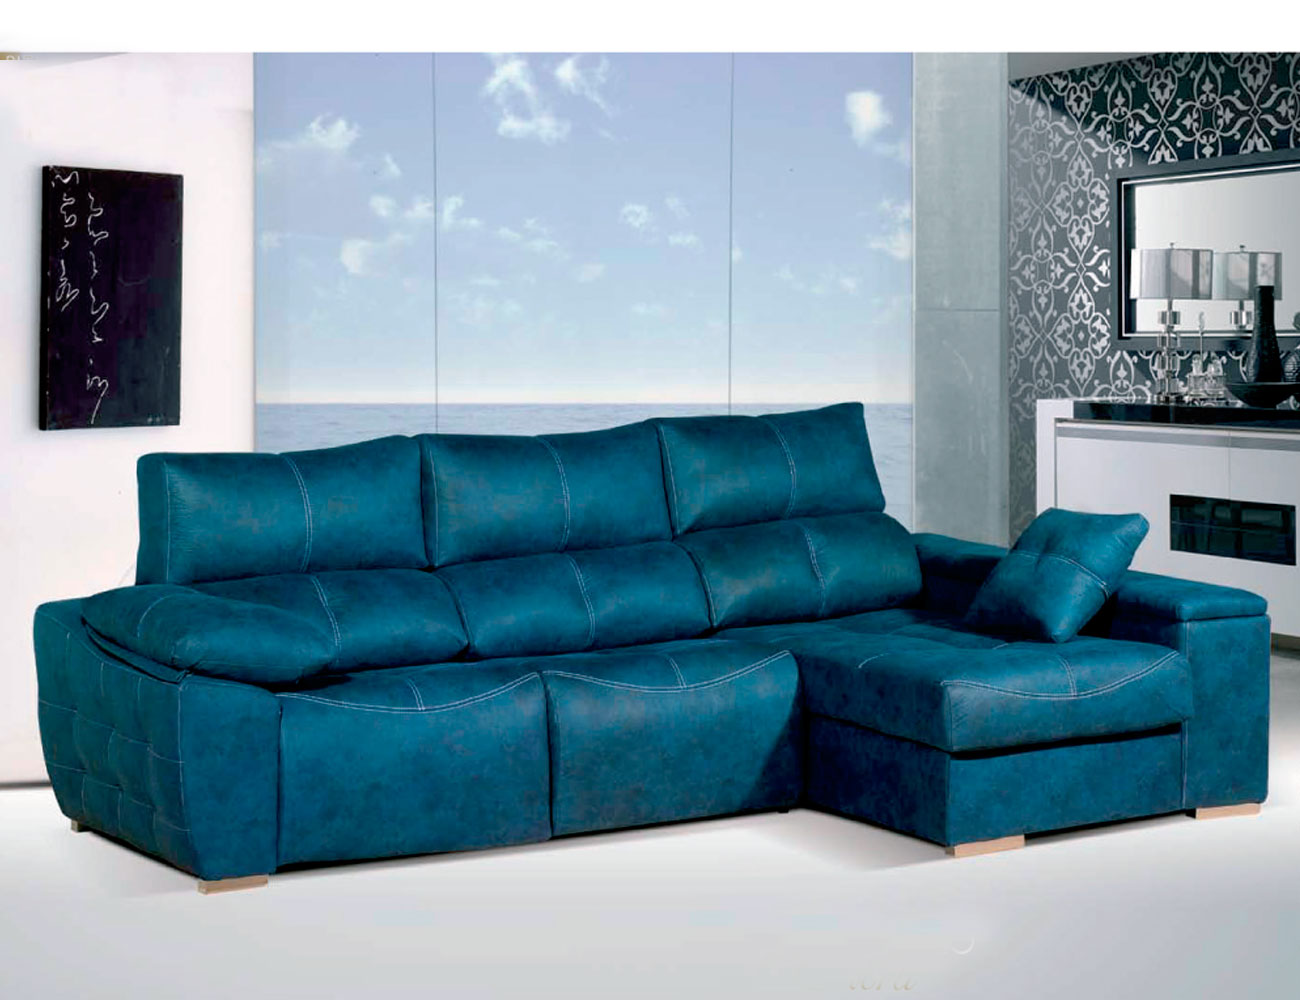 Sofa chaiselongue relax 2 motores anti manchas turquesa17